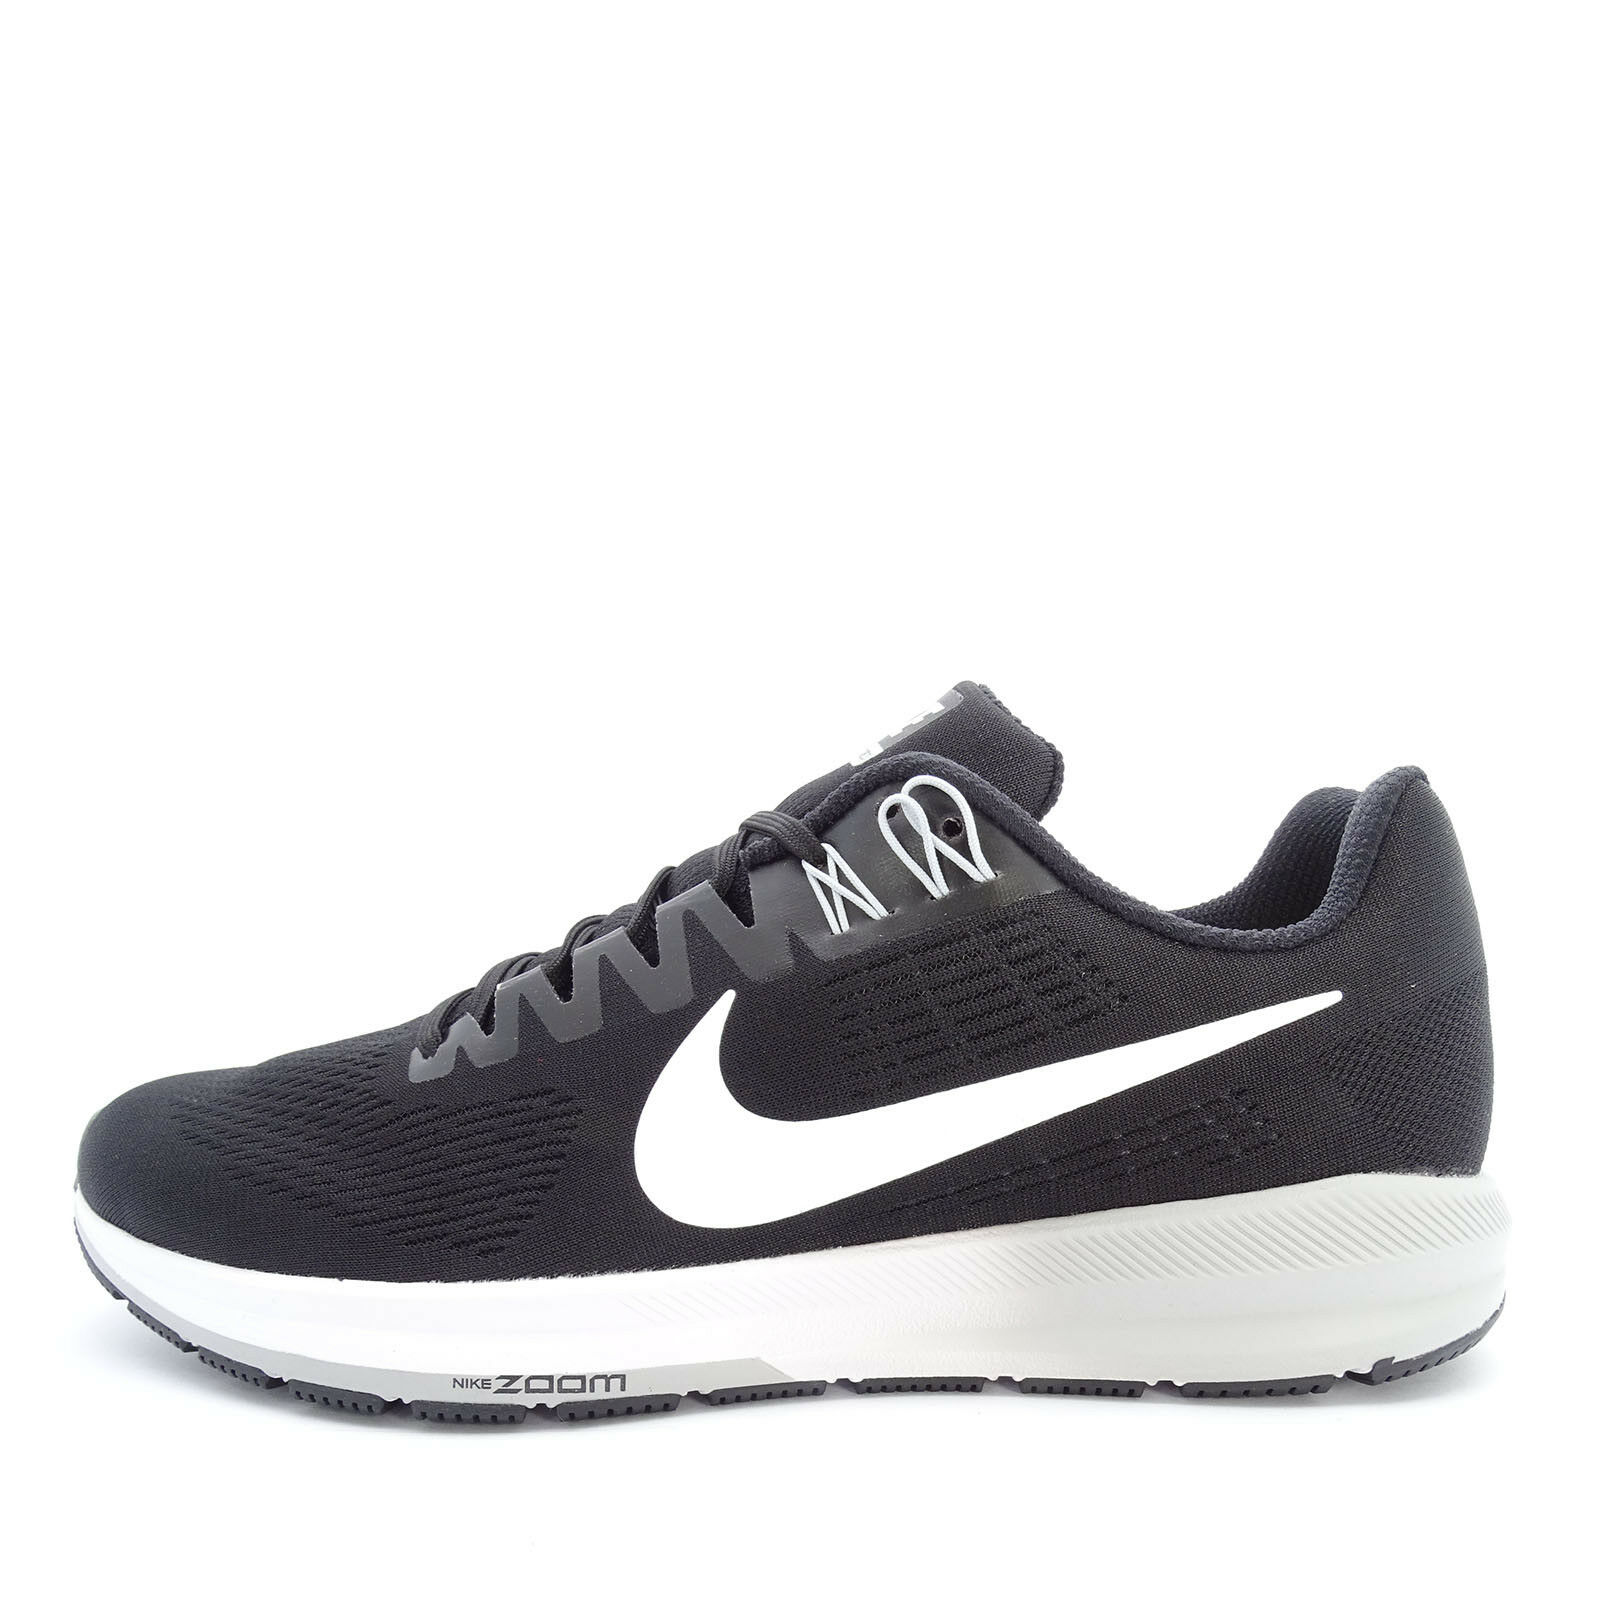 Nike Air Zoom Structure 21 [904695-001] Men Running shoes Black White-Grey